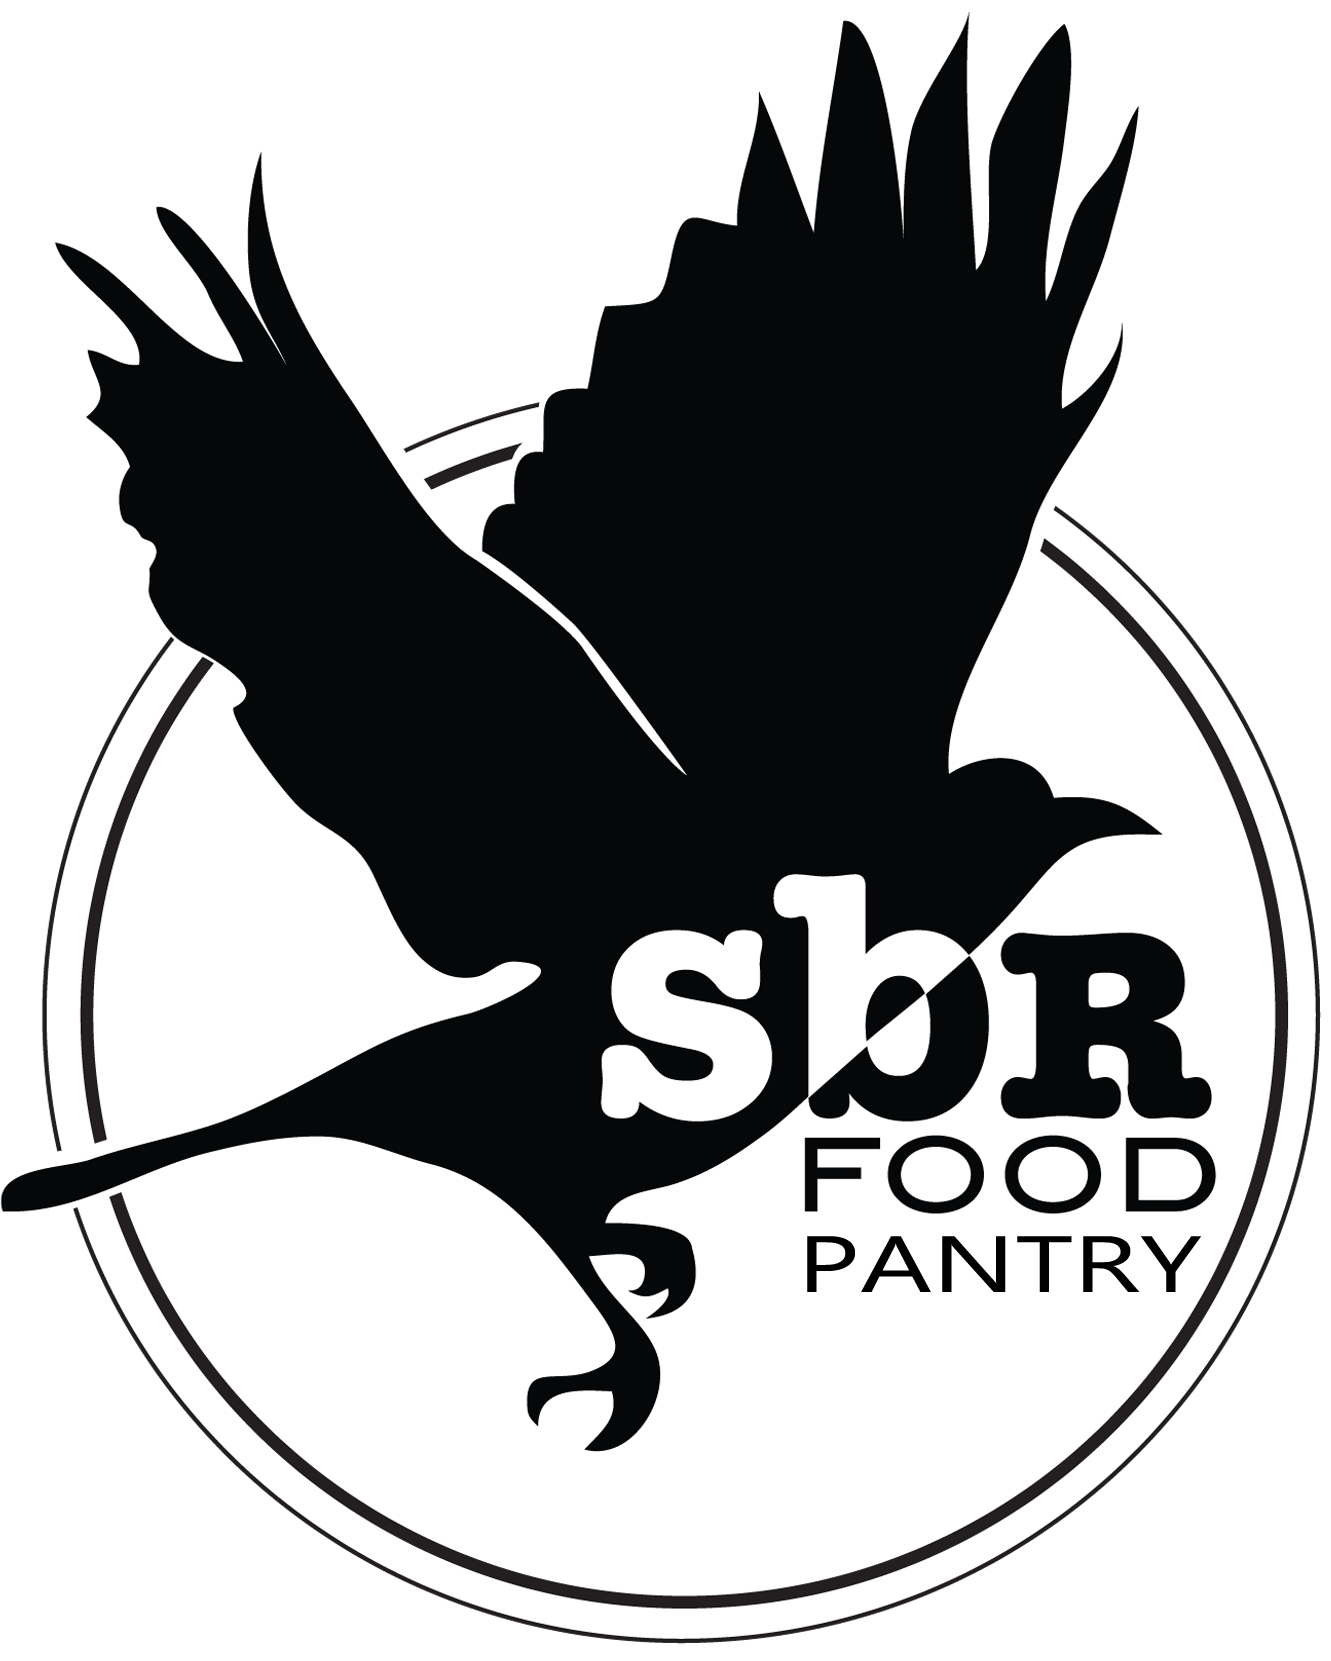 SENT BY RAVENS, (SBR) FOOD PANTRY